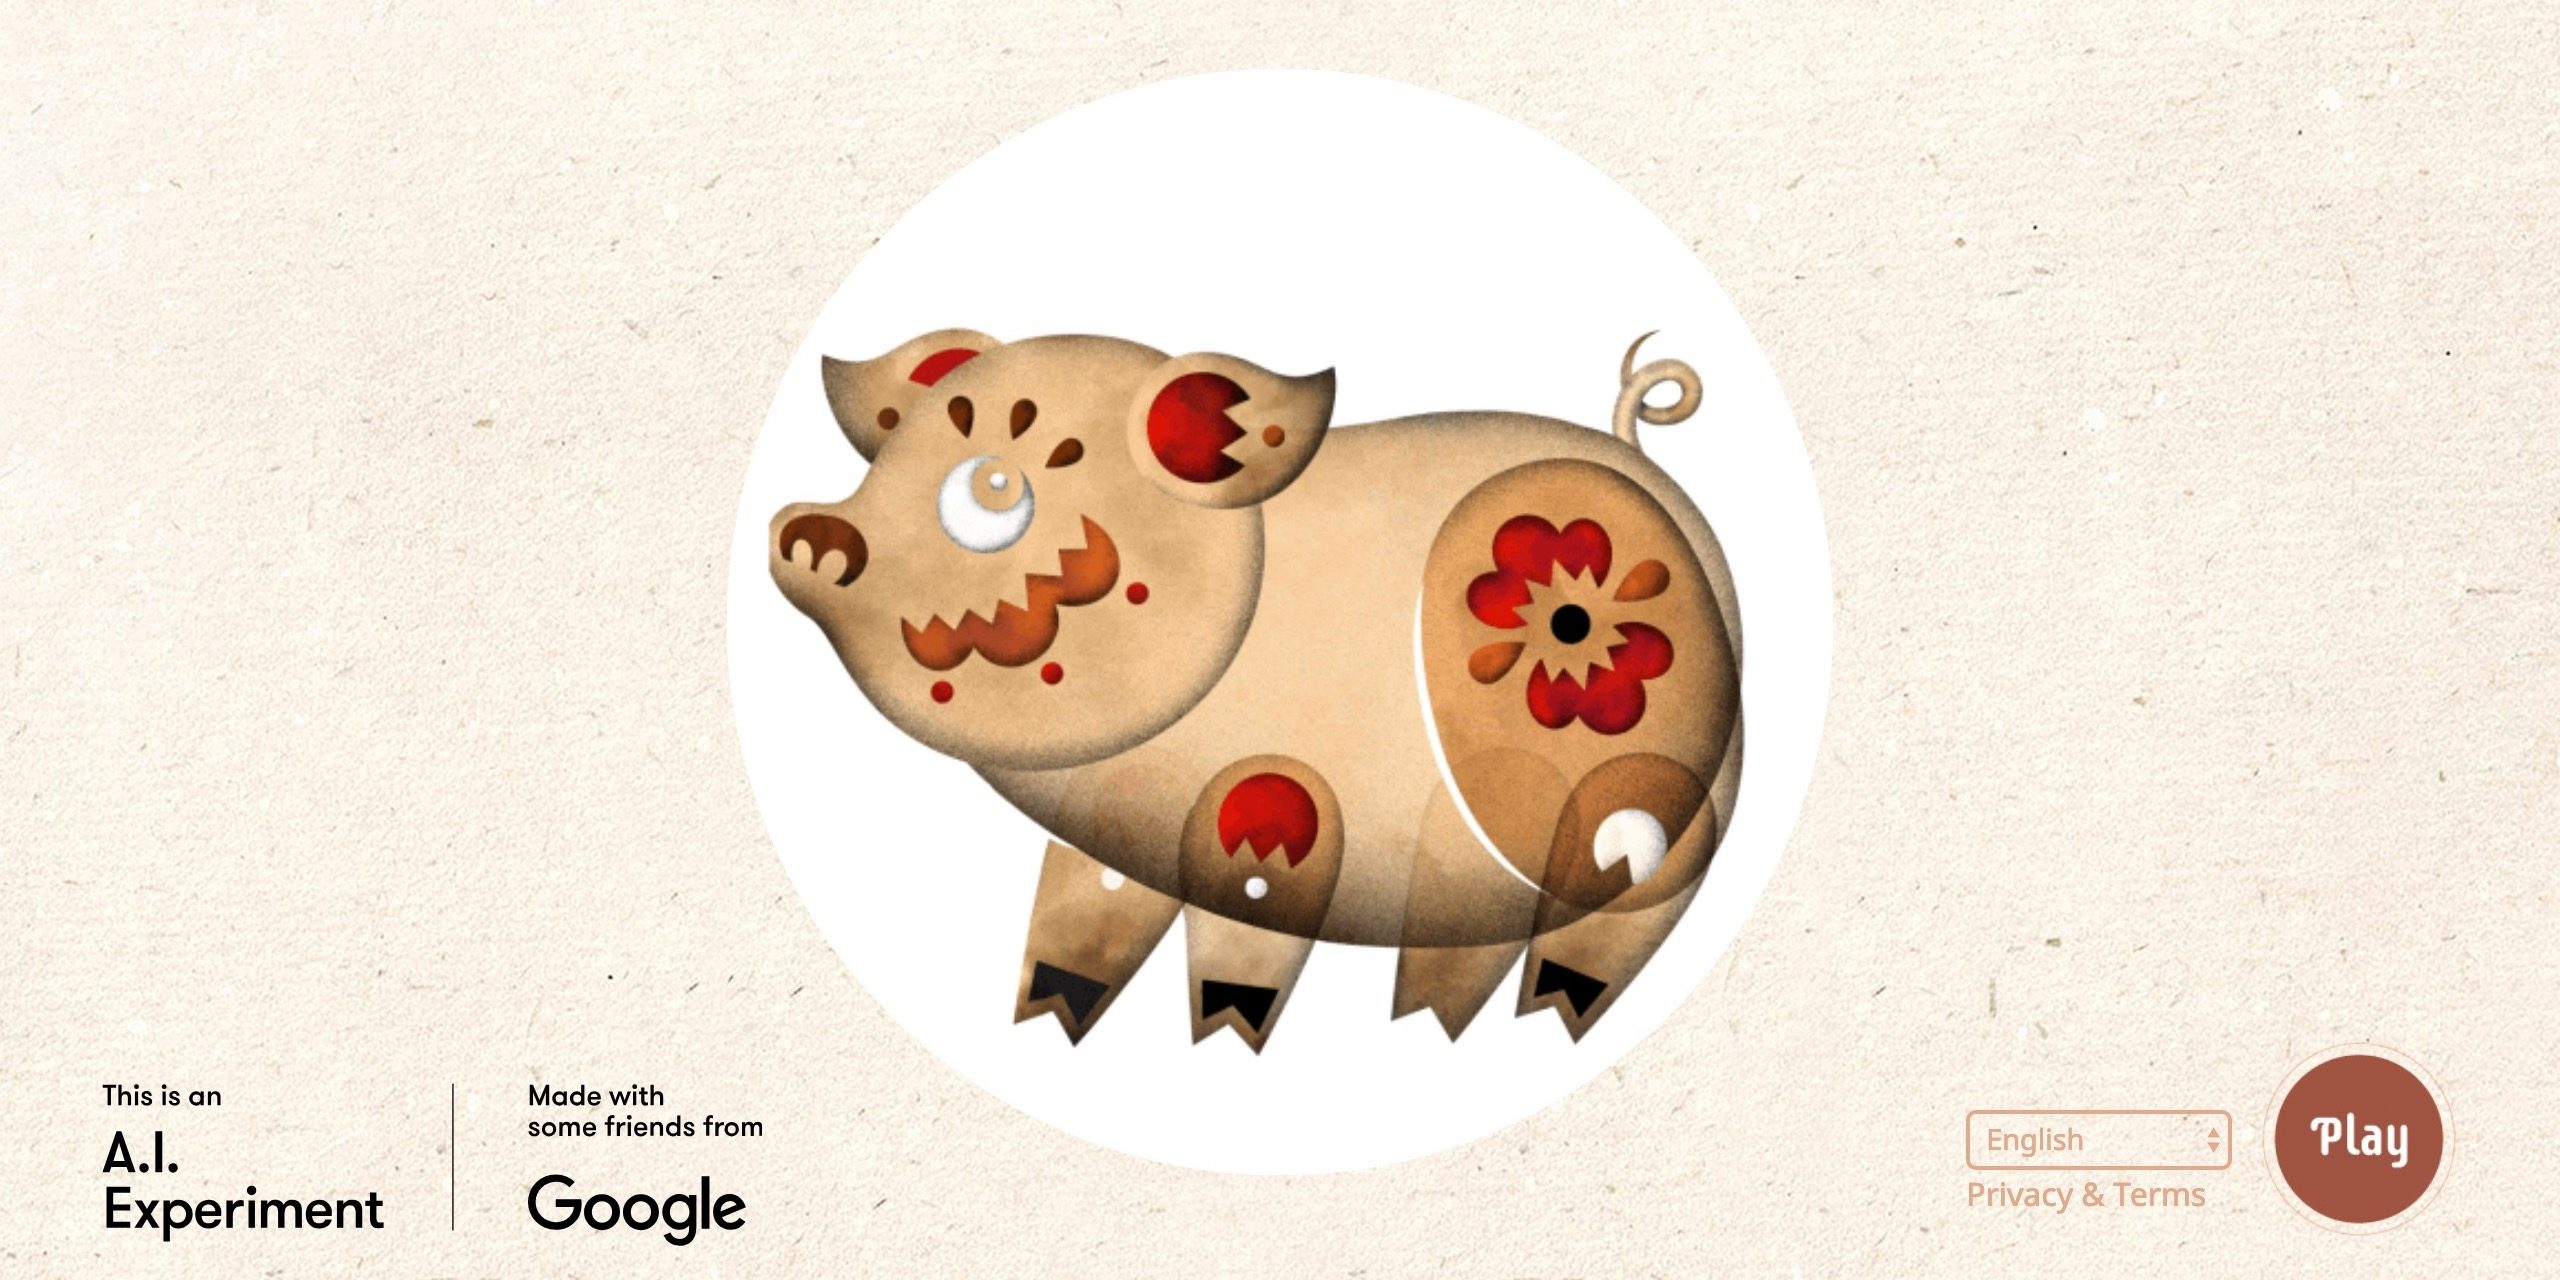 Lunar New Year Google Doodle uses AI, front-facing camera to teach shadow puppetry